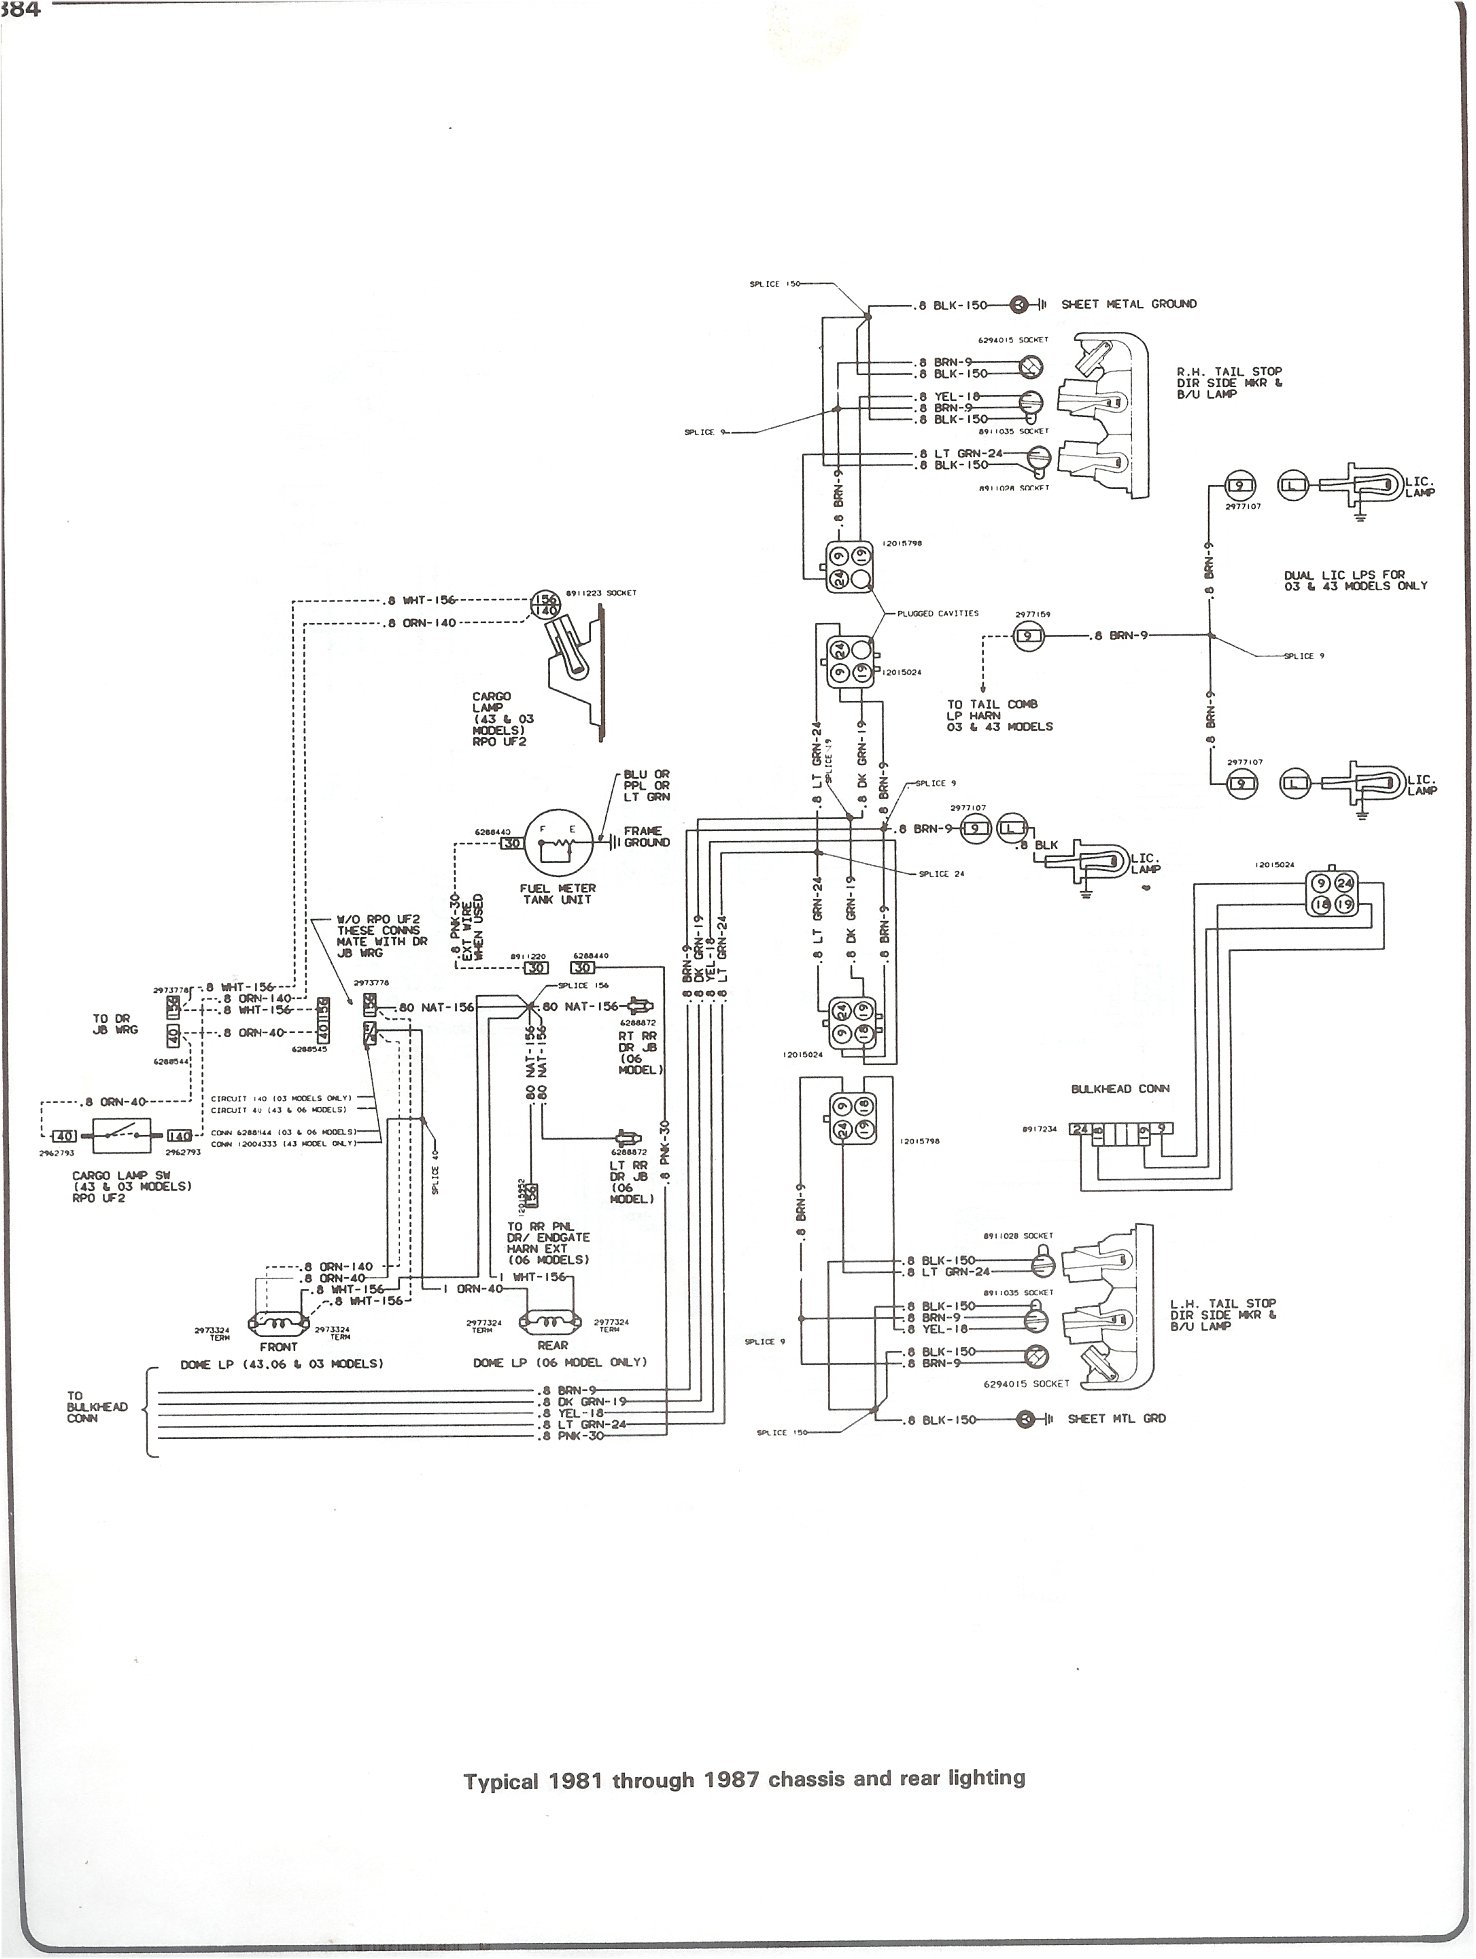 81 87_chass_rr_light complete 73 87 wiring diagrams 1985 chevy c10 fuse box diagram at pacquiaovsvargaslive.co